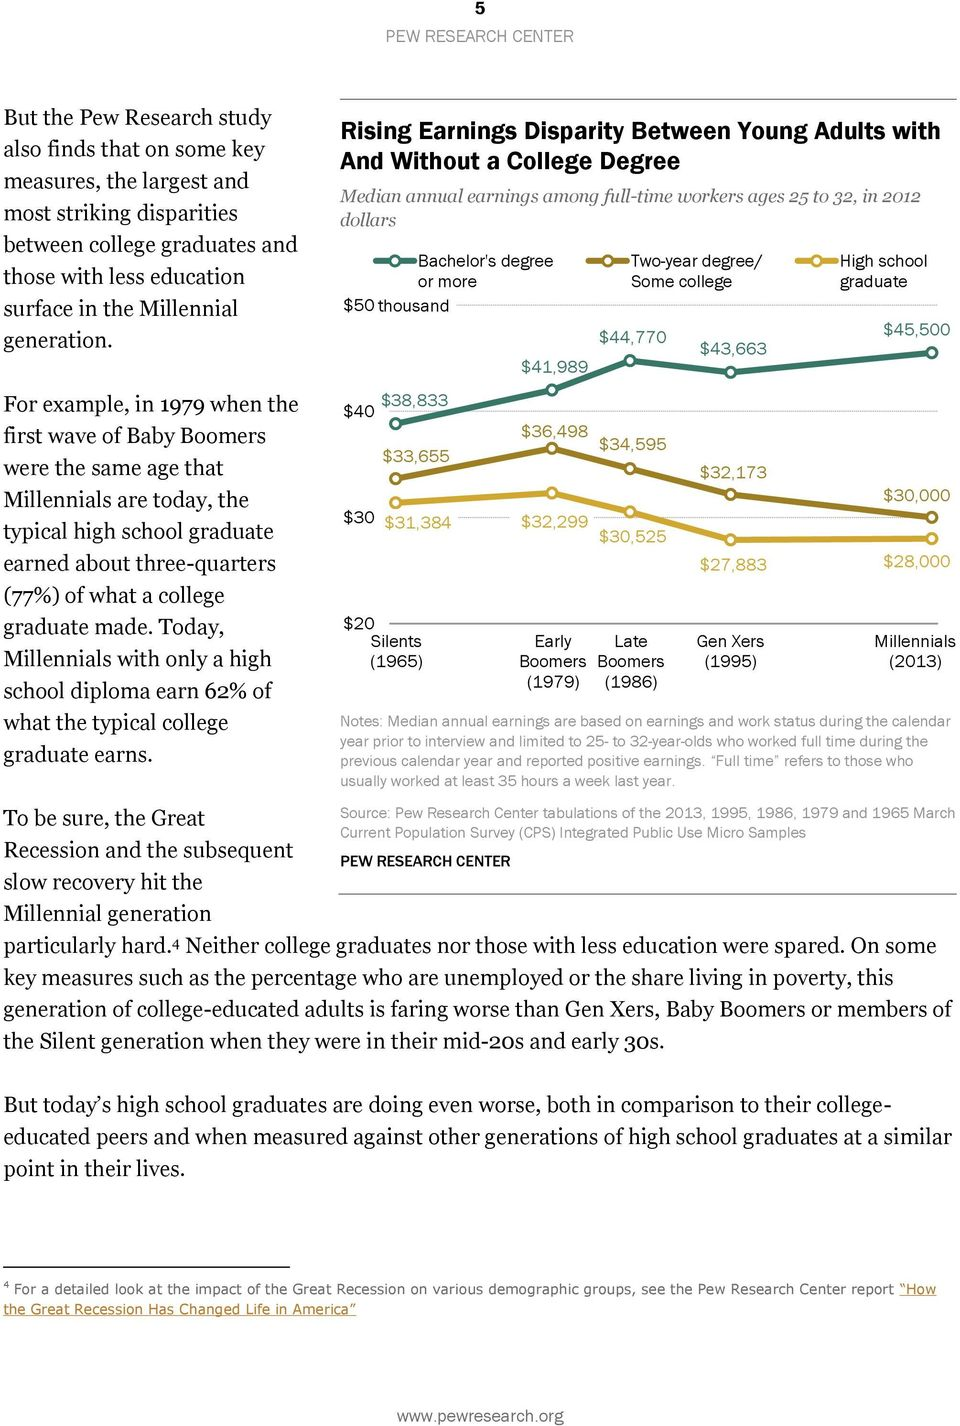 For example, in 1979 when the first wave of Baby Boomers were the same age that Millennials are today, the typical high school graduate earned about three-quarters (77%) of what a college graduate